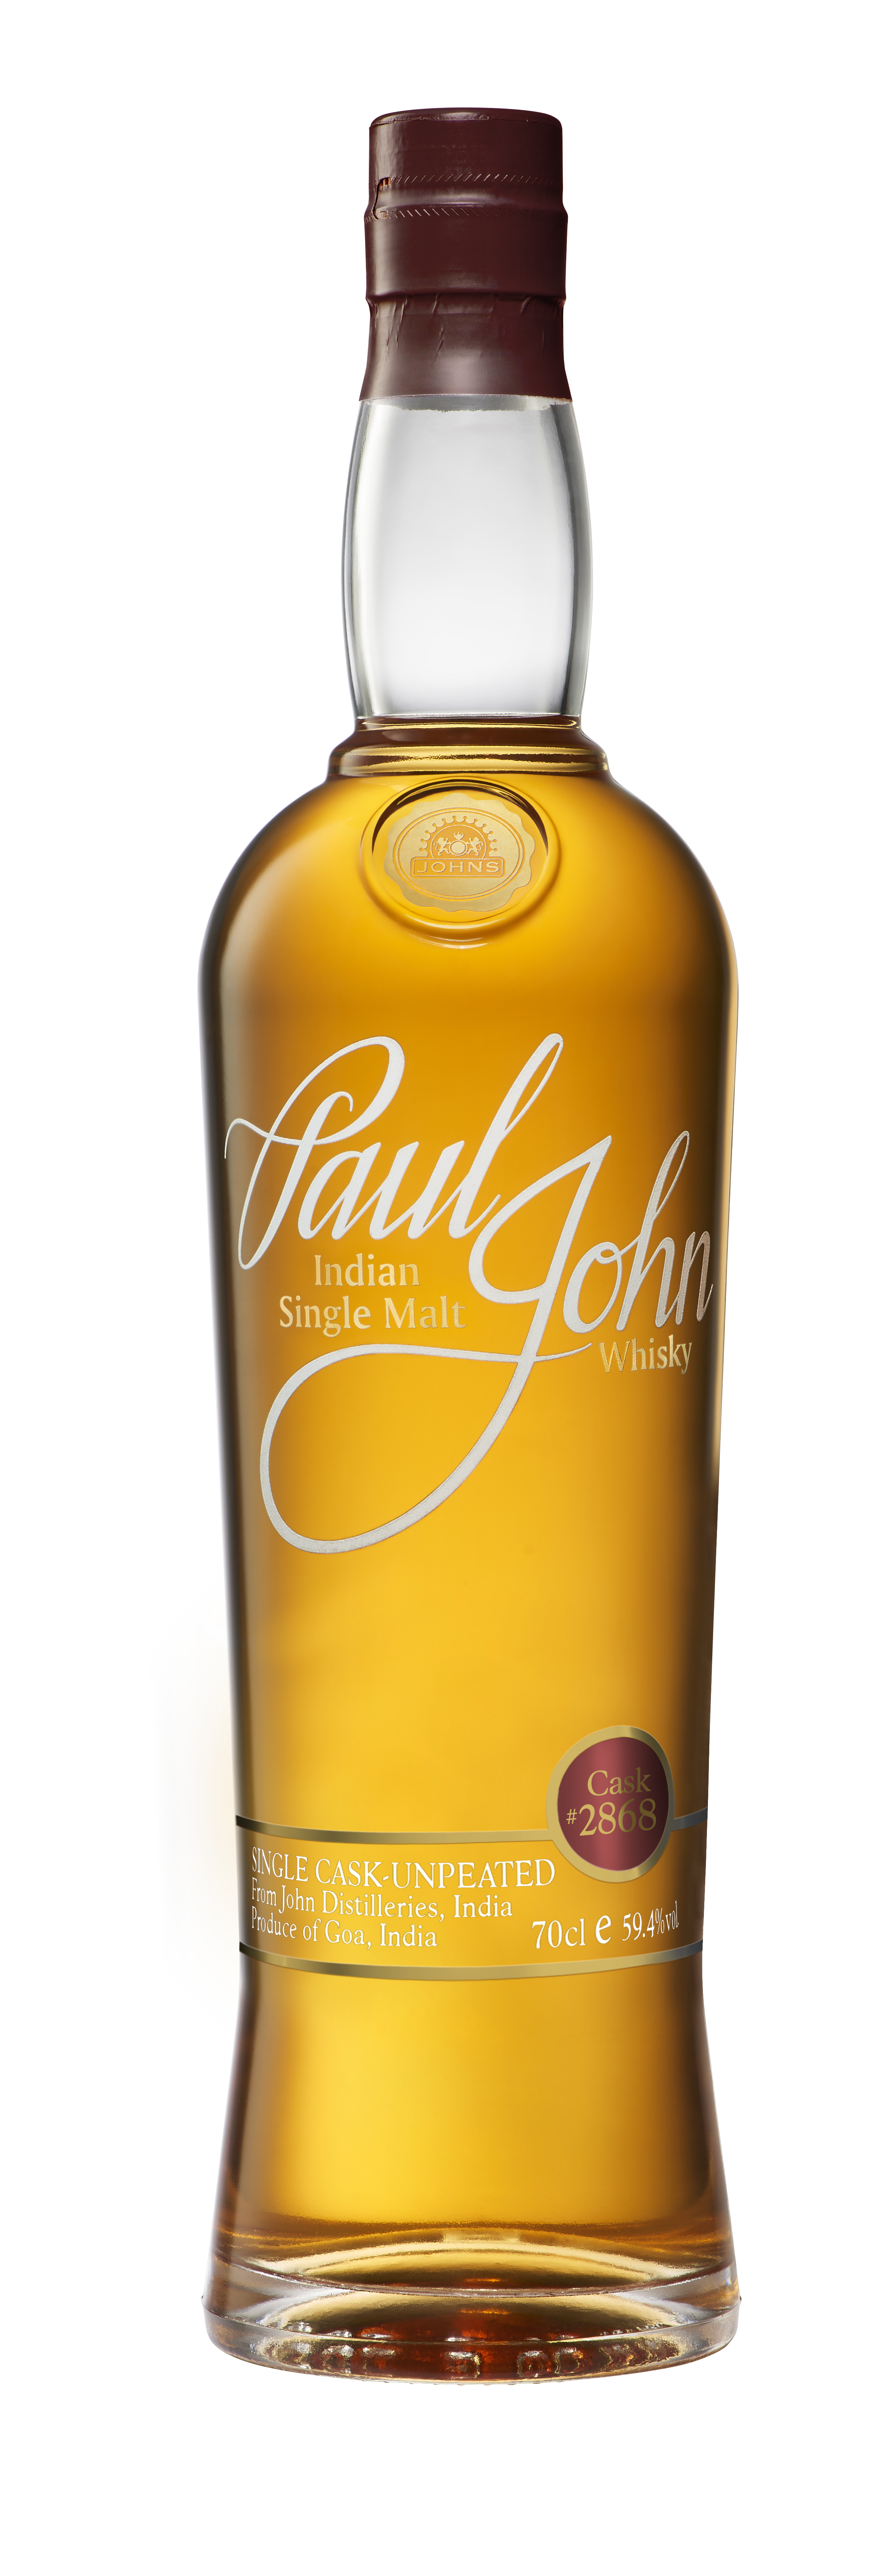 Paul John Single Cask bottle 02